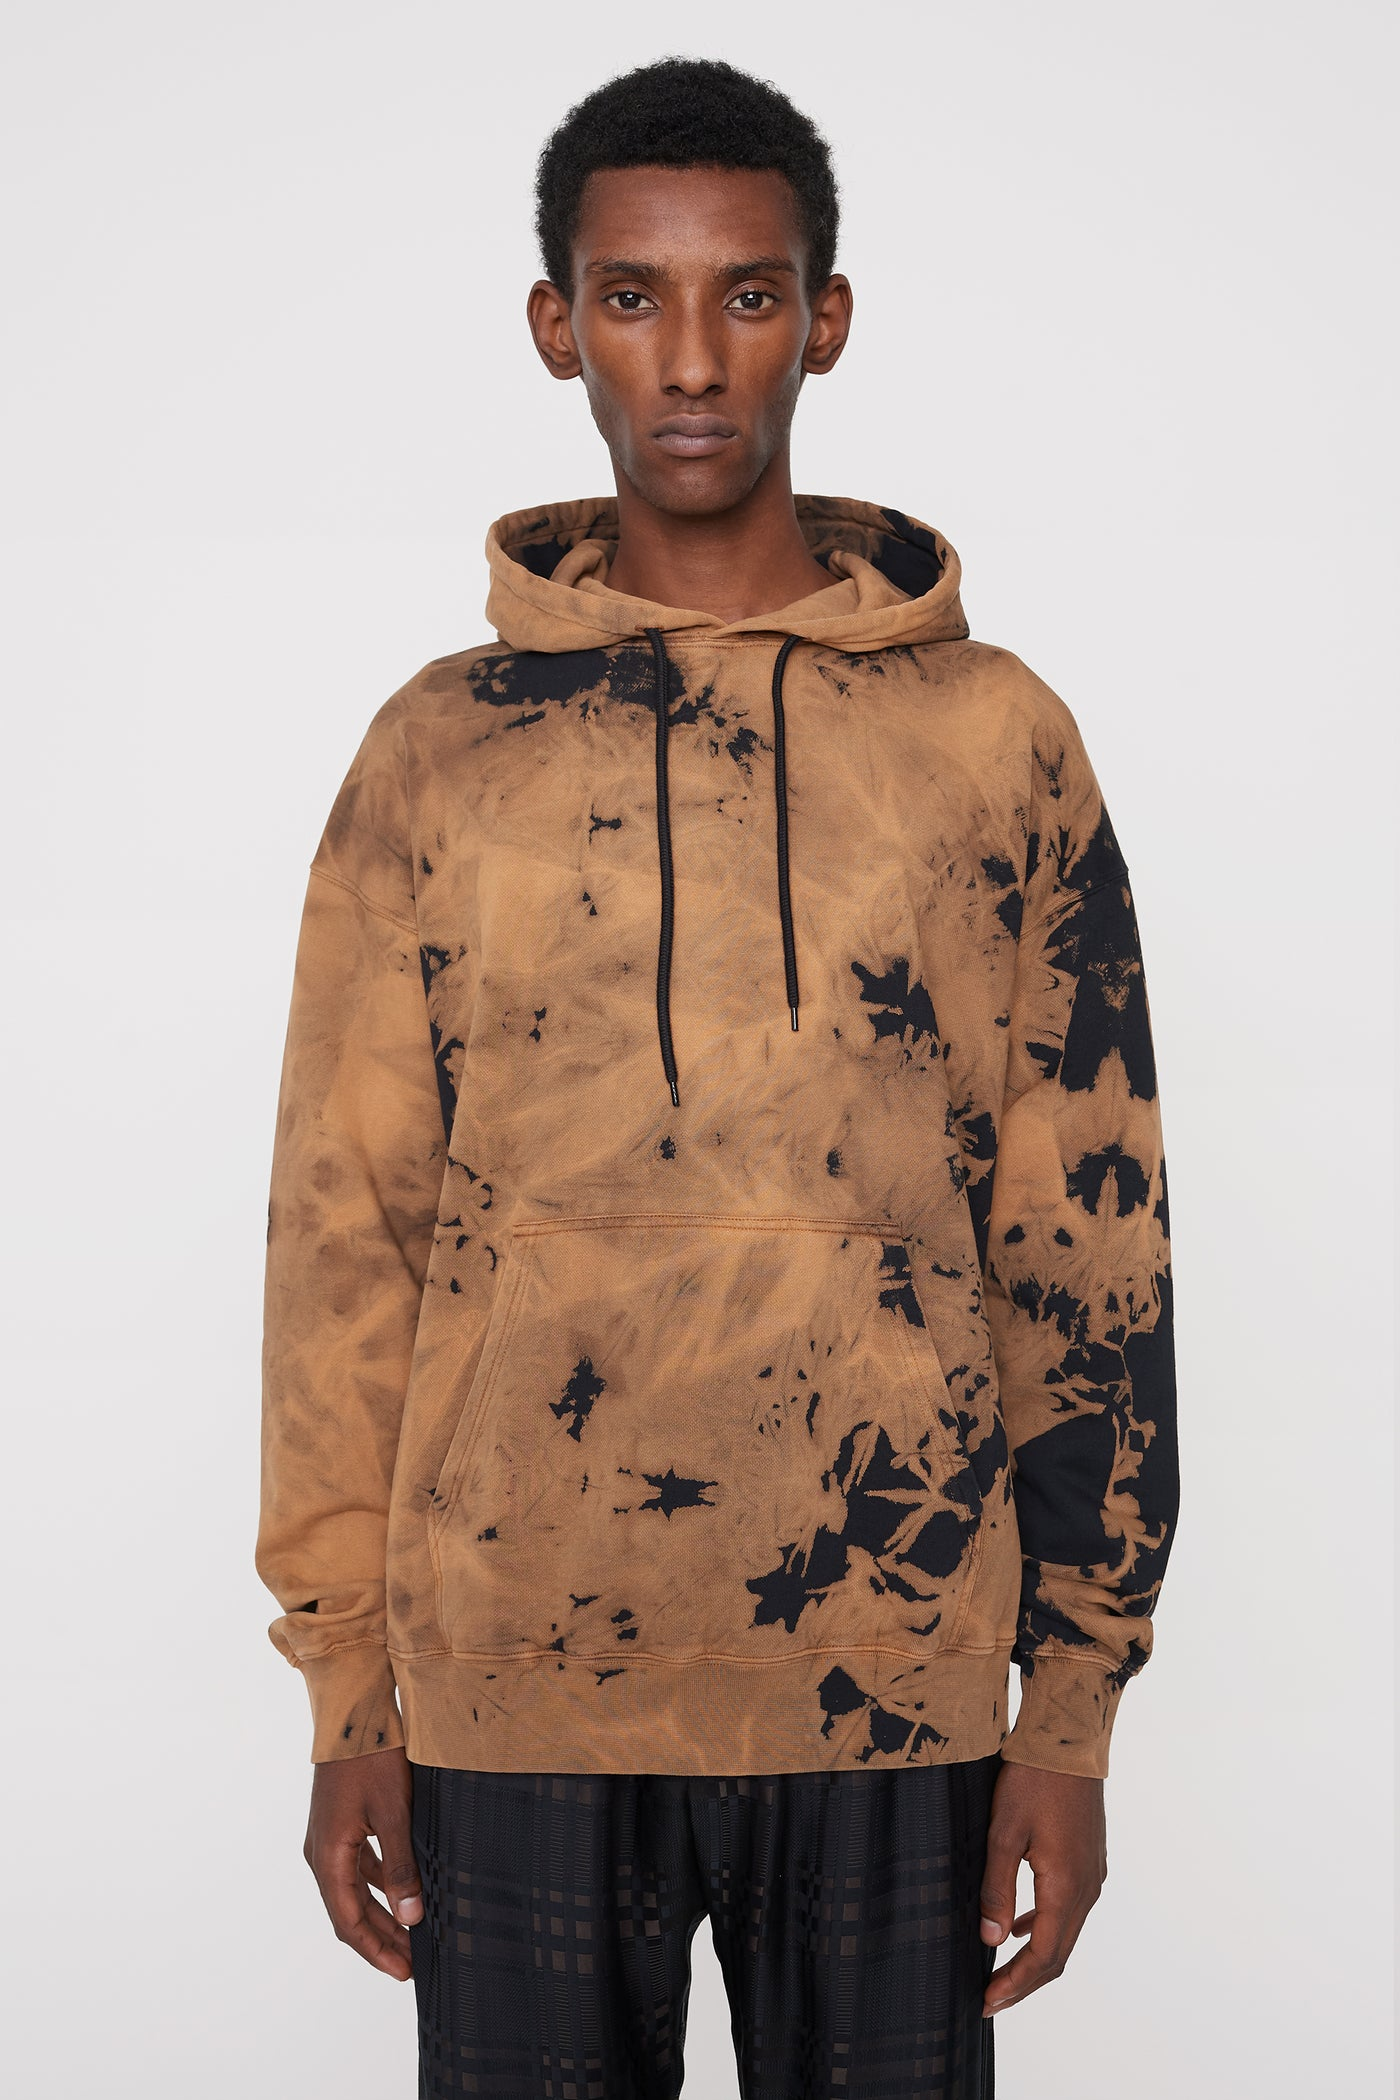 Shawn bleach hoodie brown/black